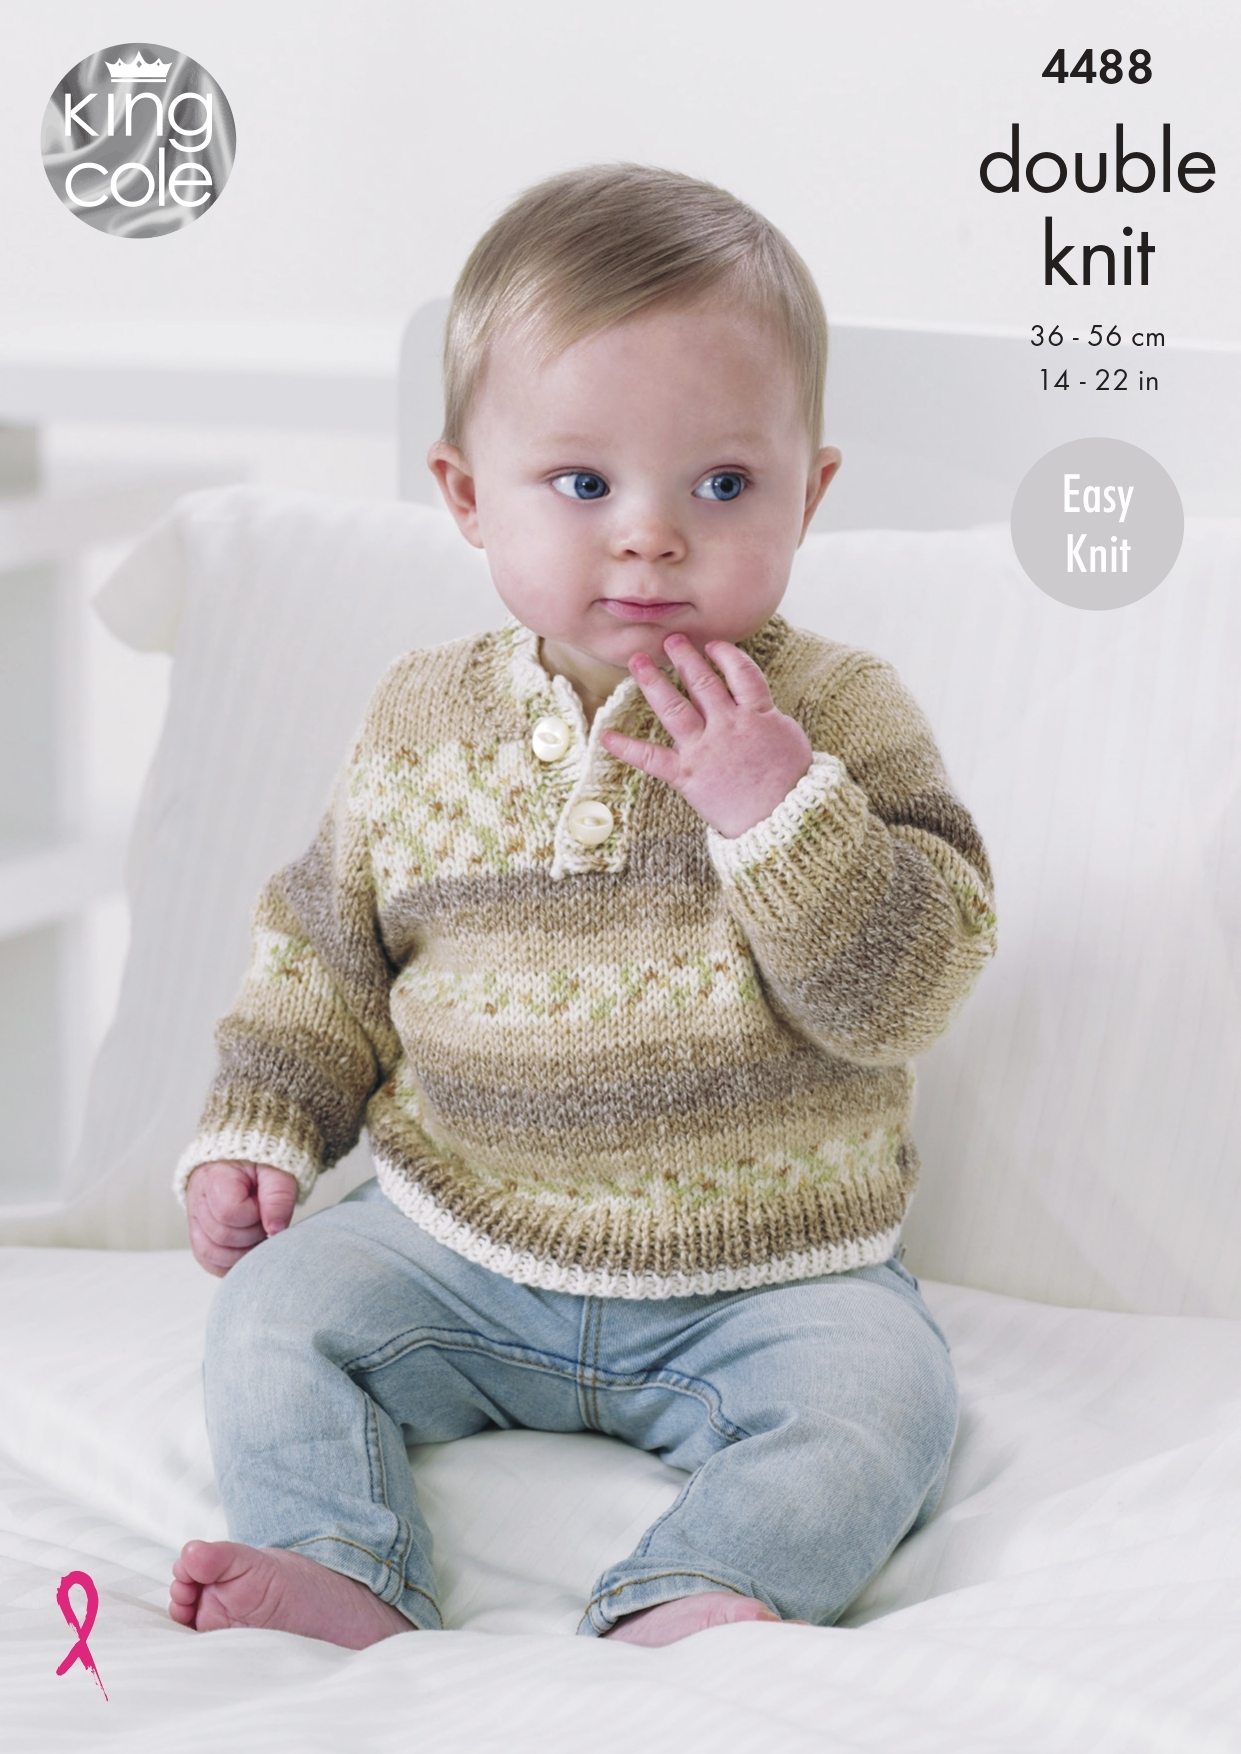 King Cole 5443 Baby/'s Sweater Cardigan /& Blanket DK Knitting Pattern 14-22/""